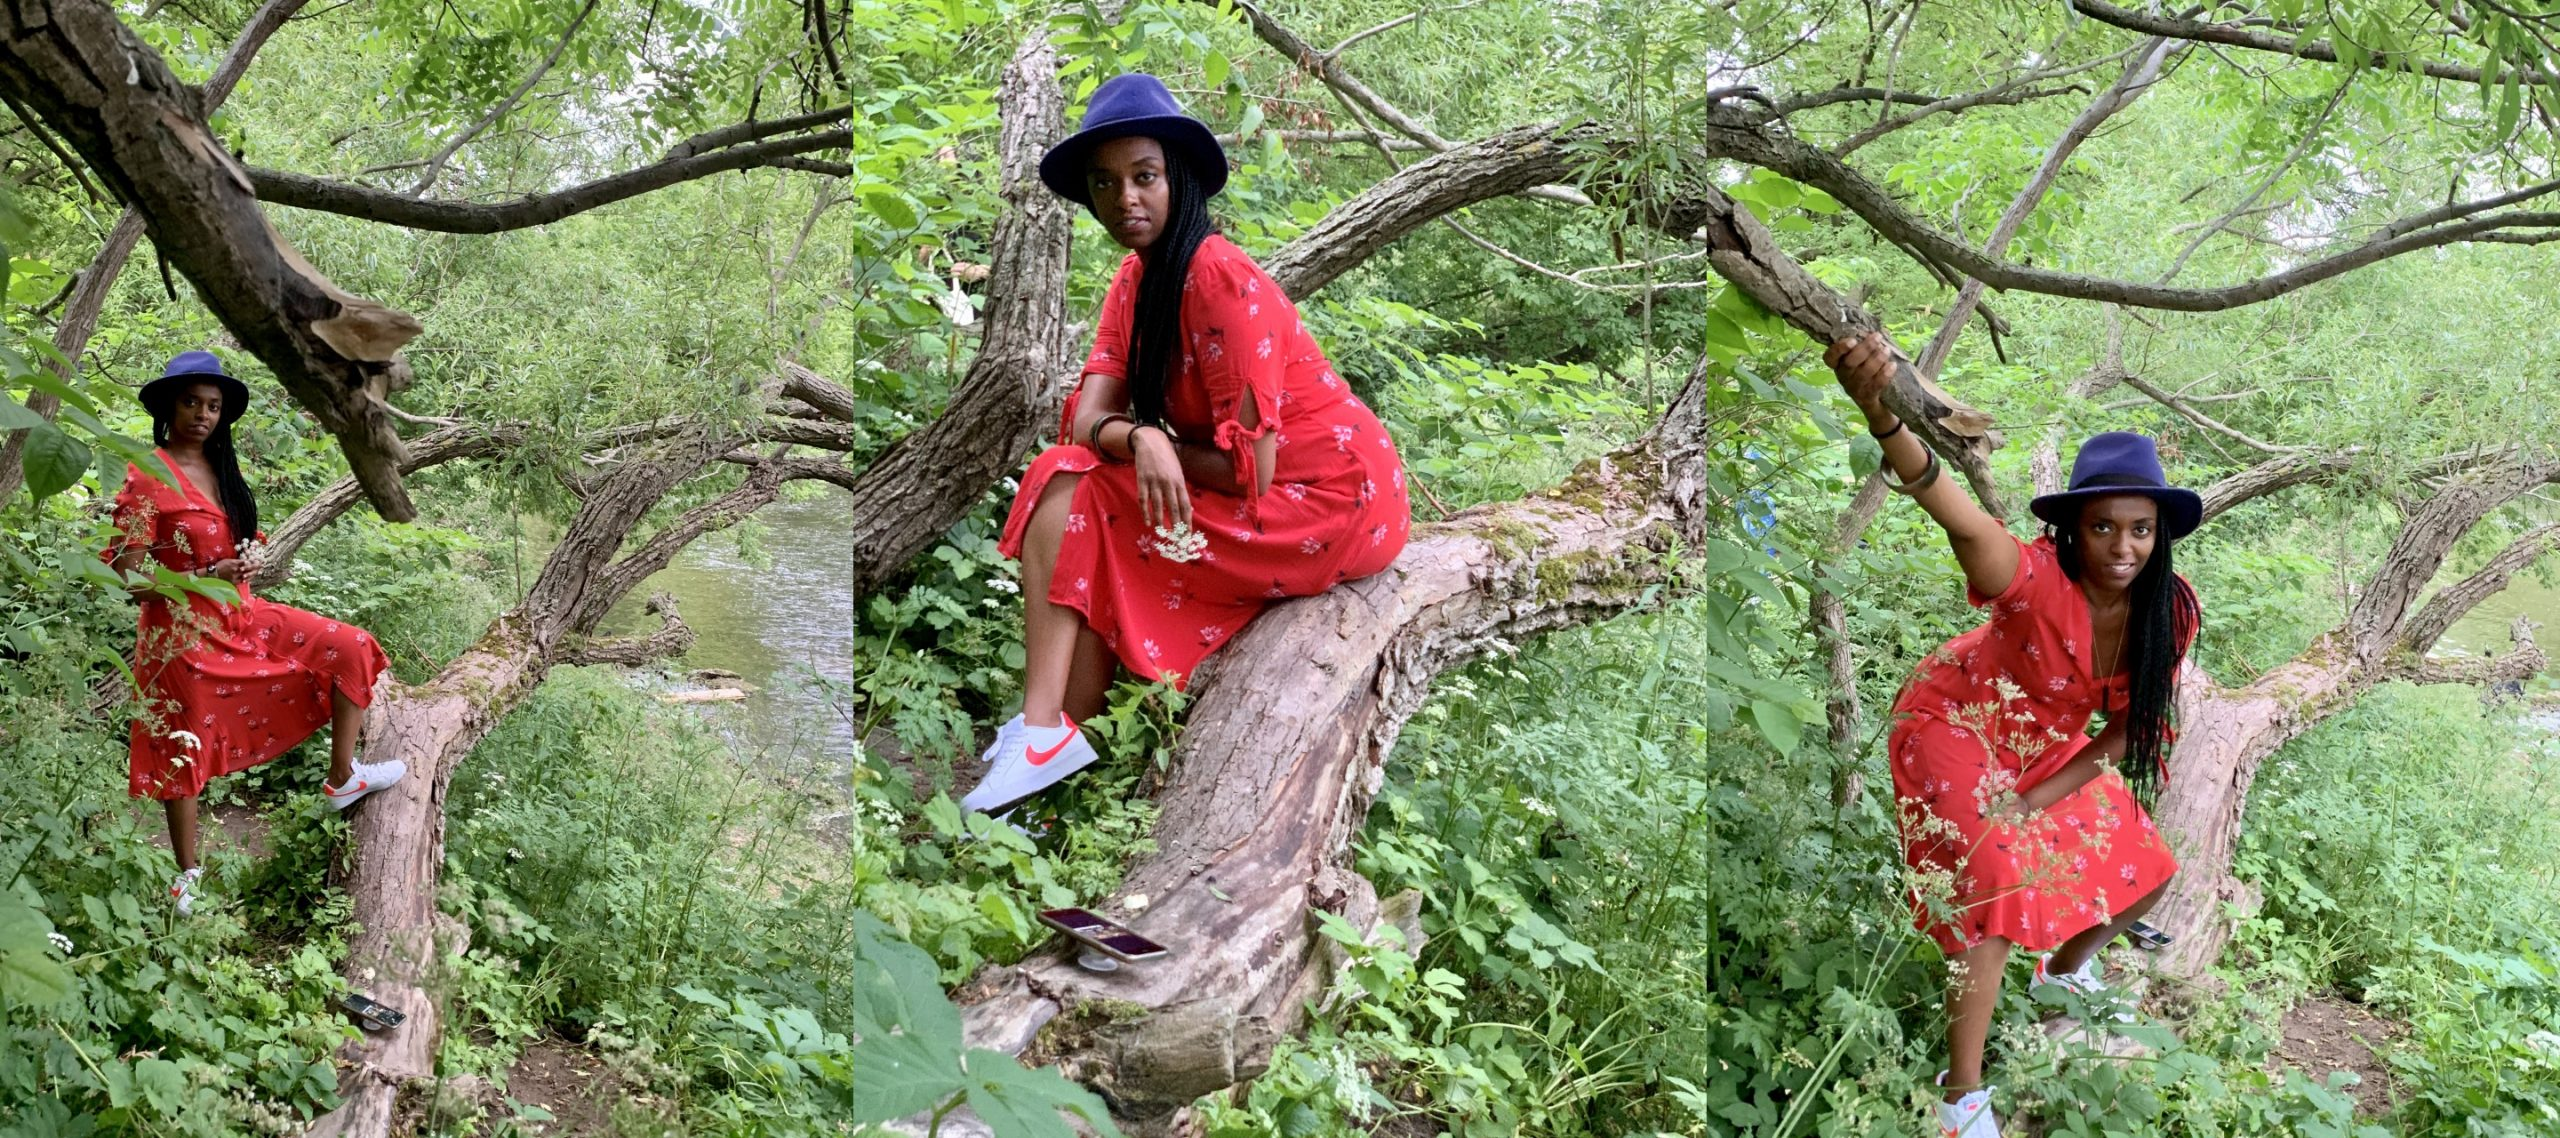 Three photos in a collage of a woman in red sitting on a tree trunk. She is a rude girls member